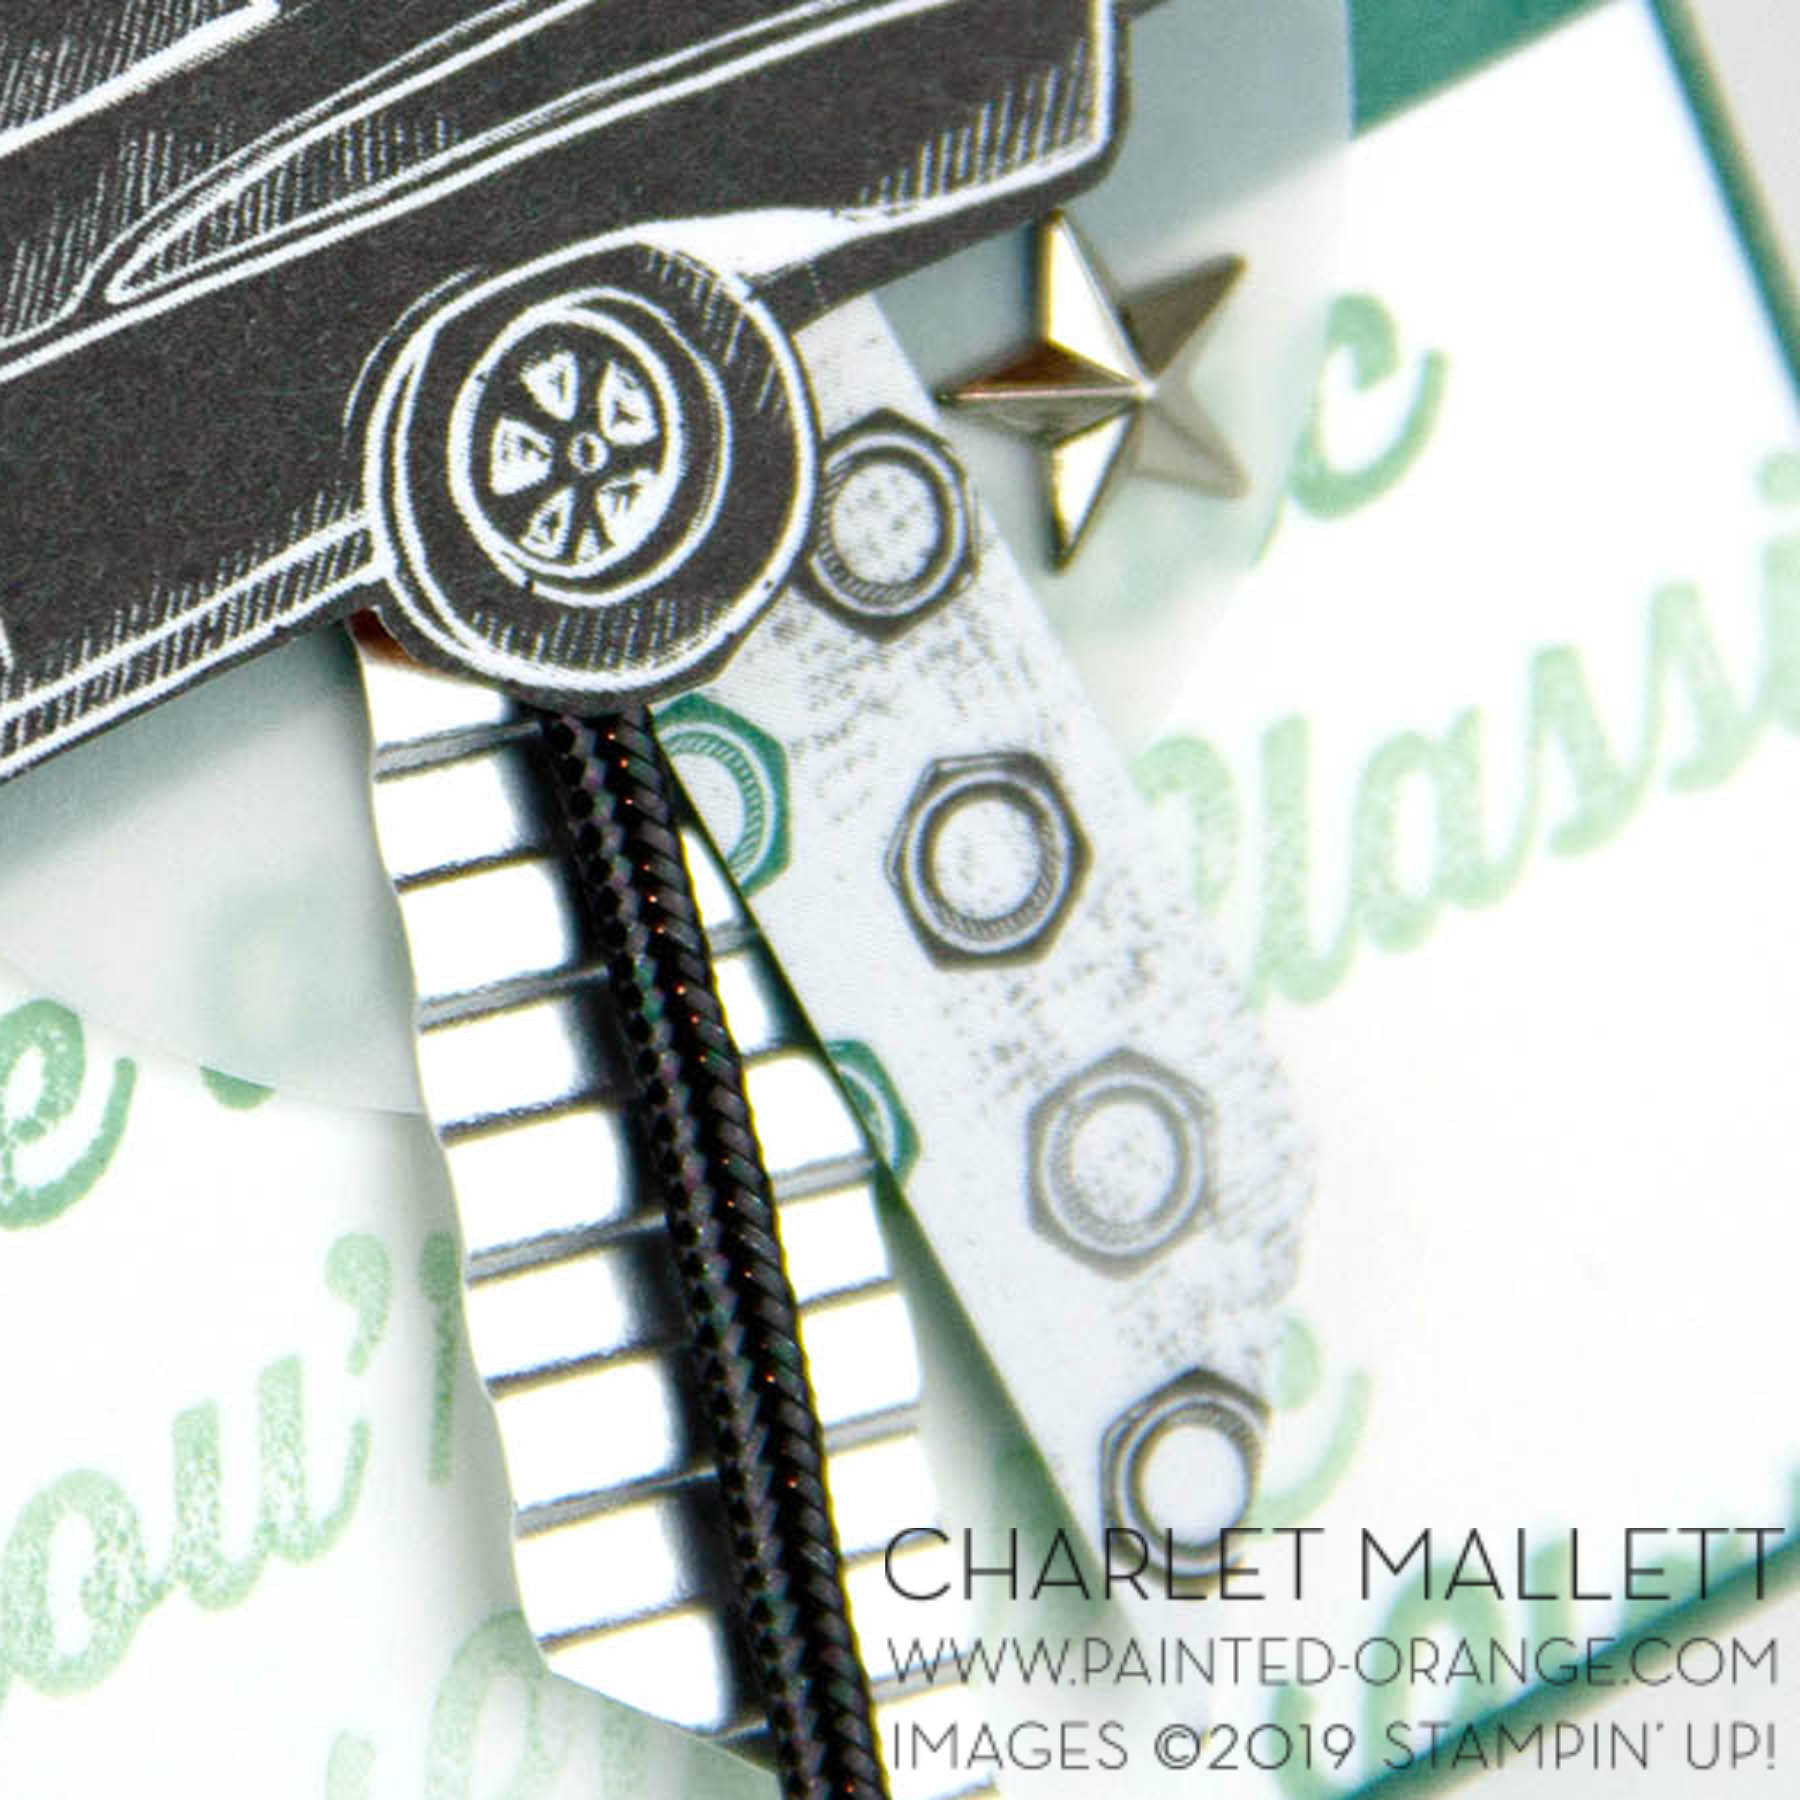 Geared Up Garage - Charlet Mallett, Stampin' Up!